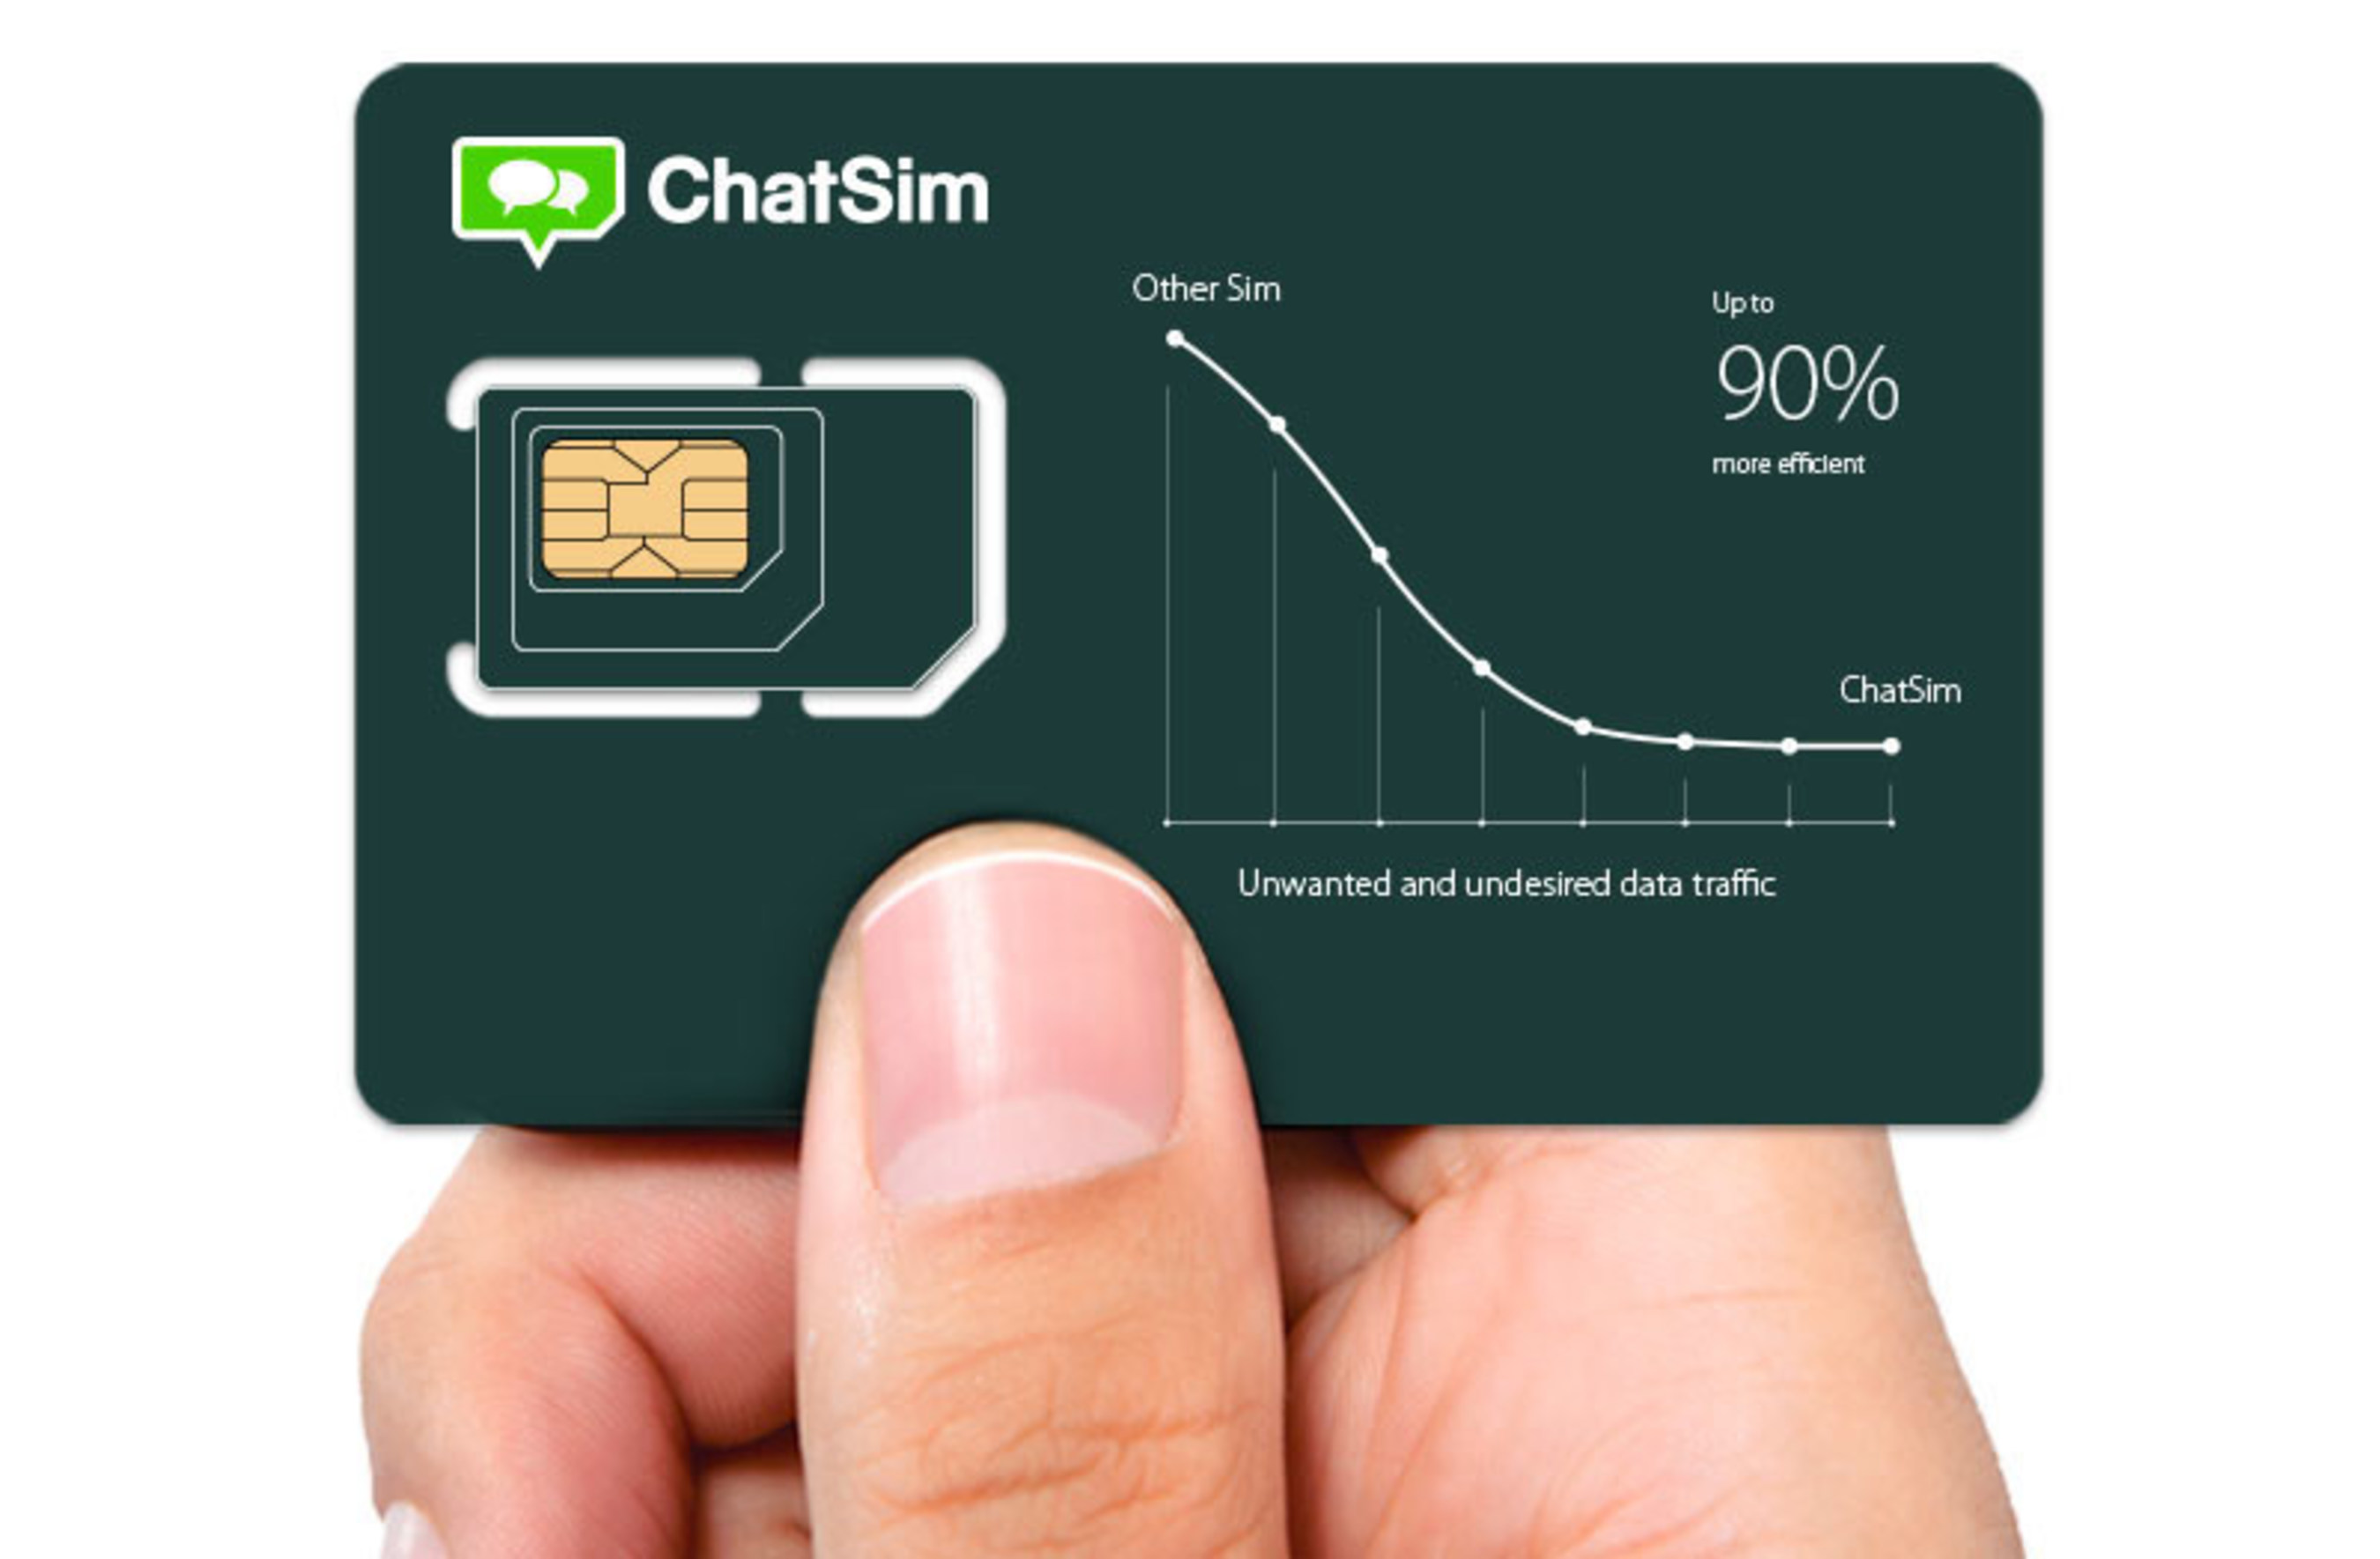 The official distribution of ChatSim World, the world's most efficient SIM card, kicks off